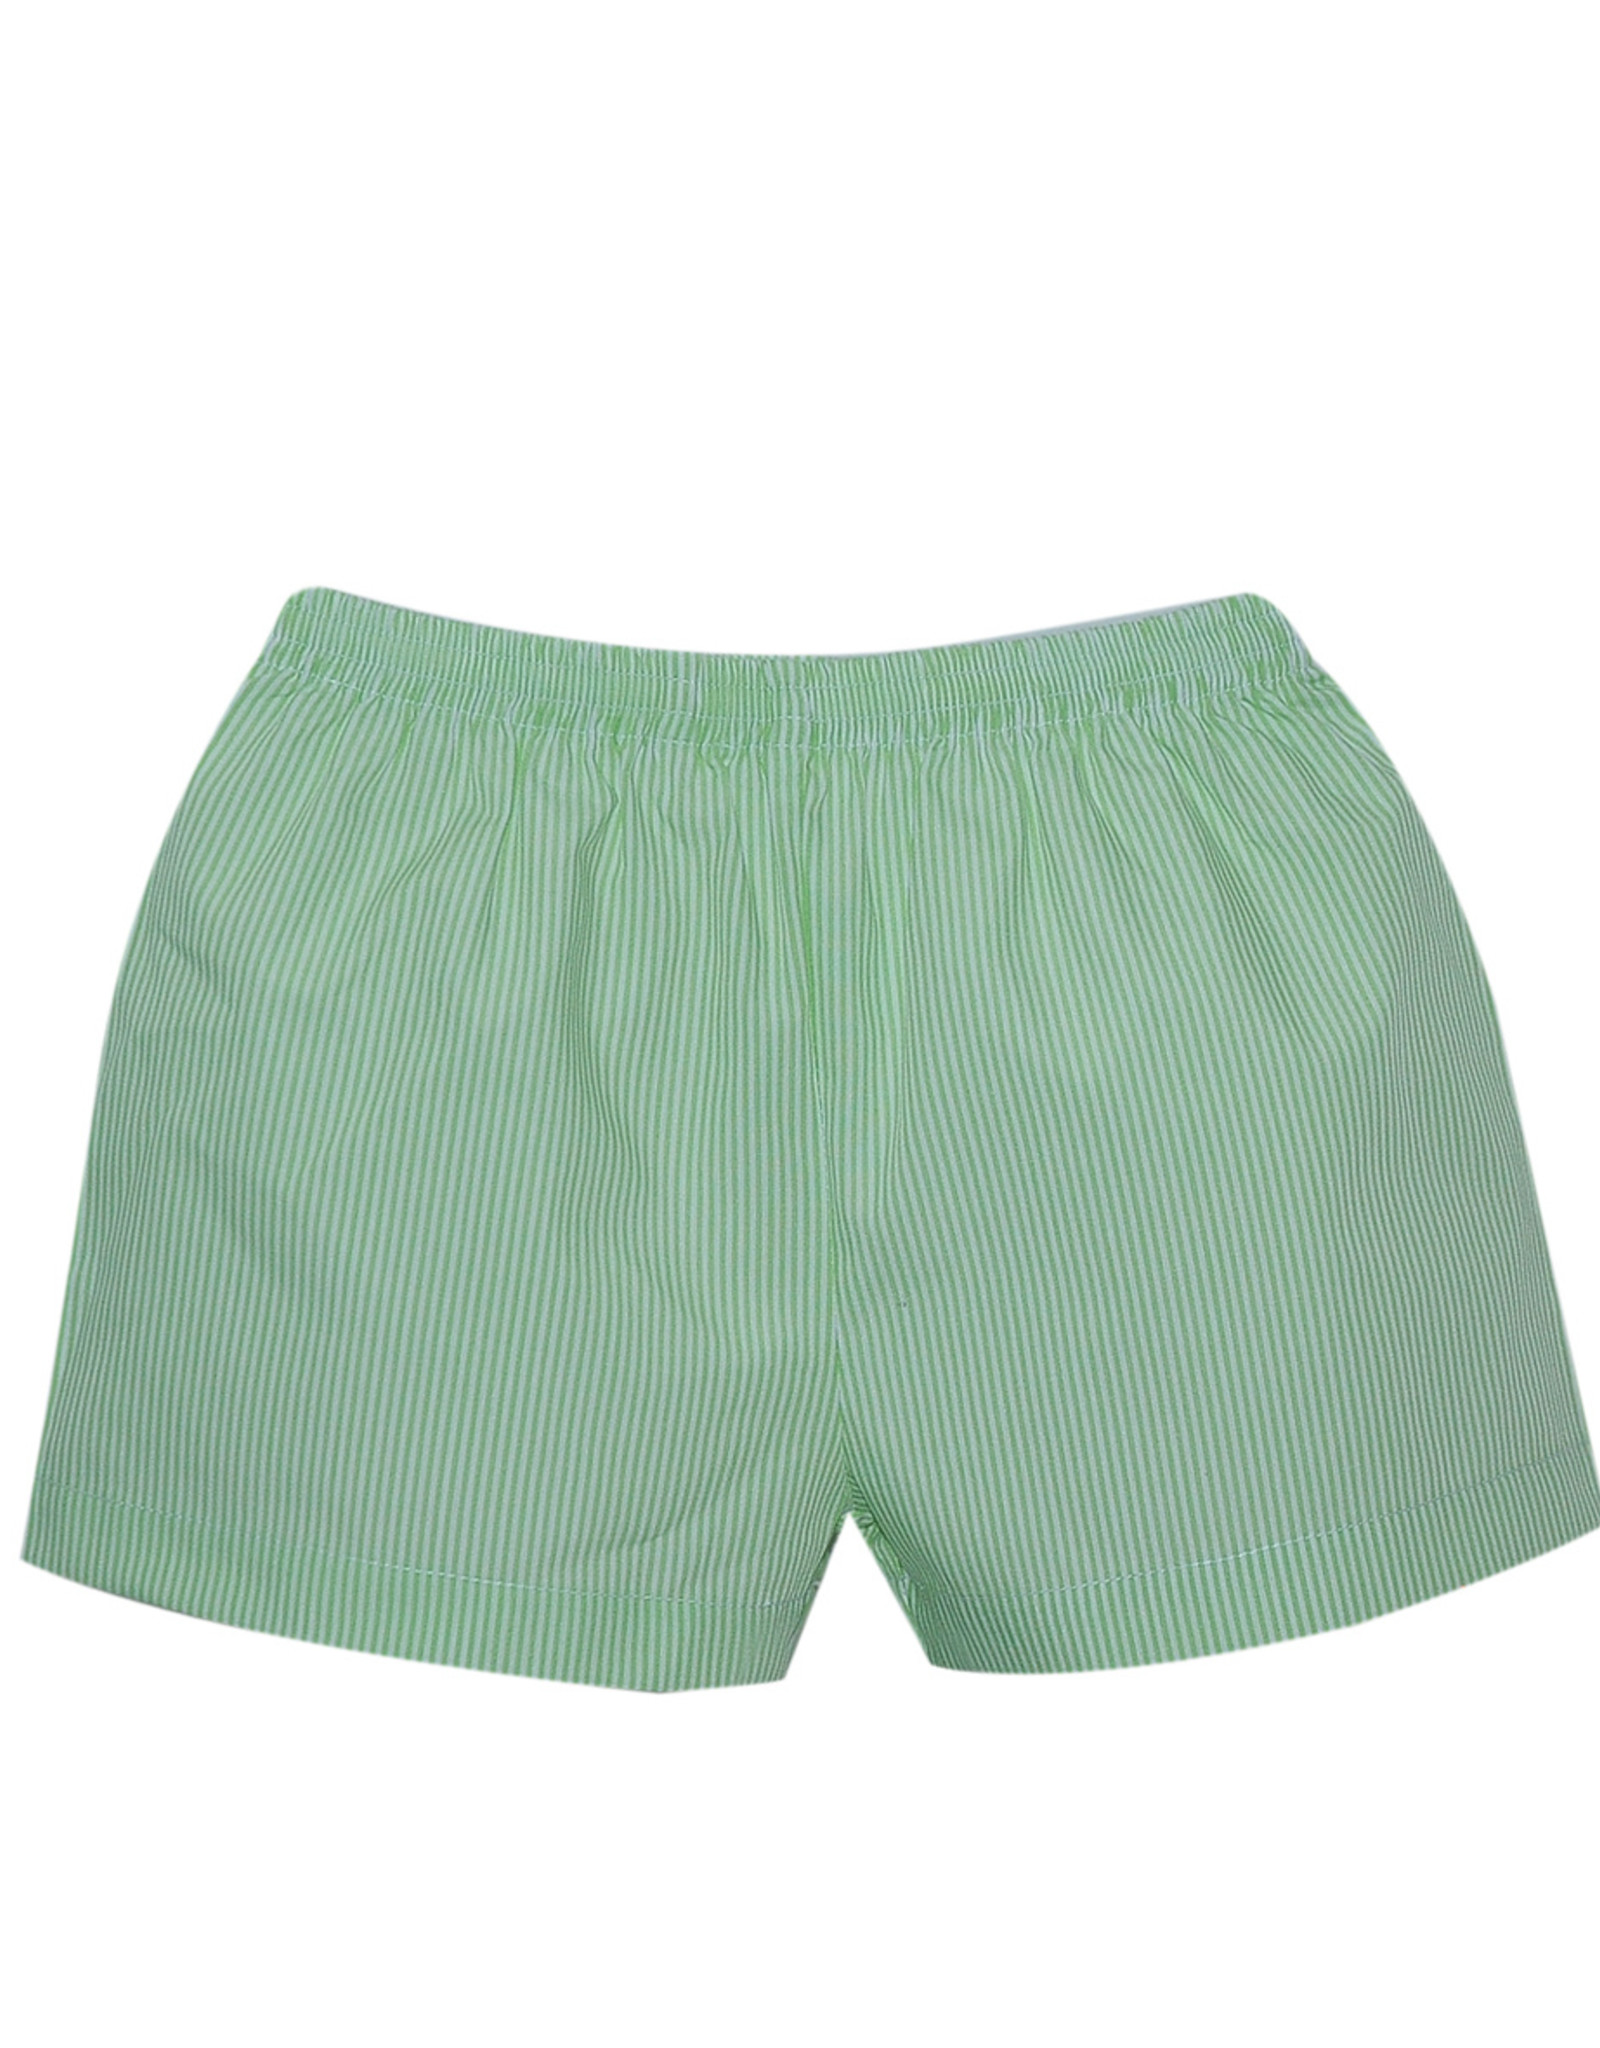 LullabySet Stewart Green Striped Shorts